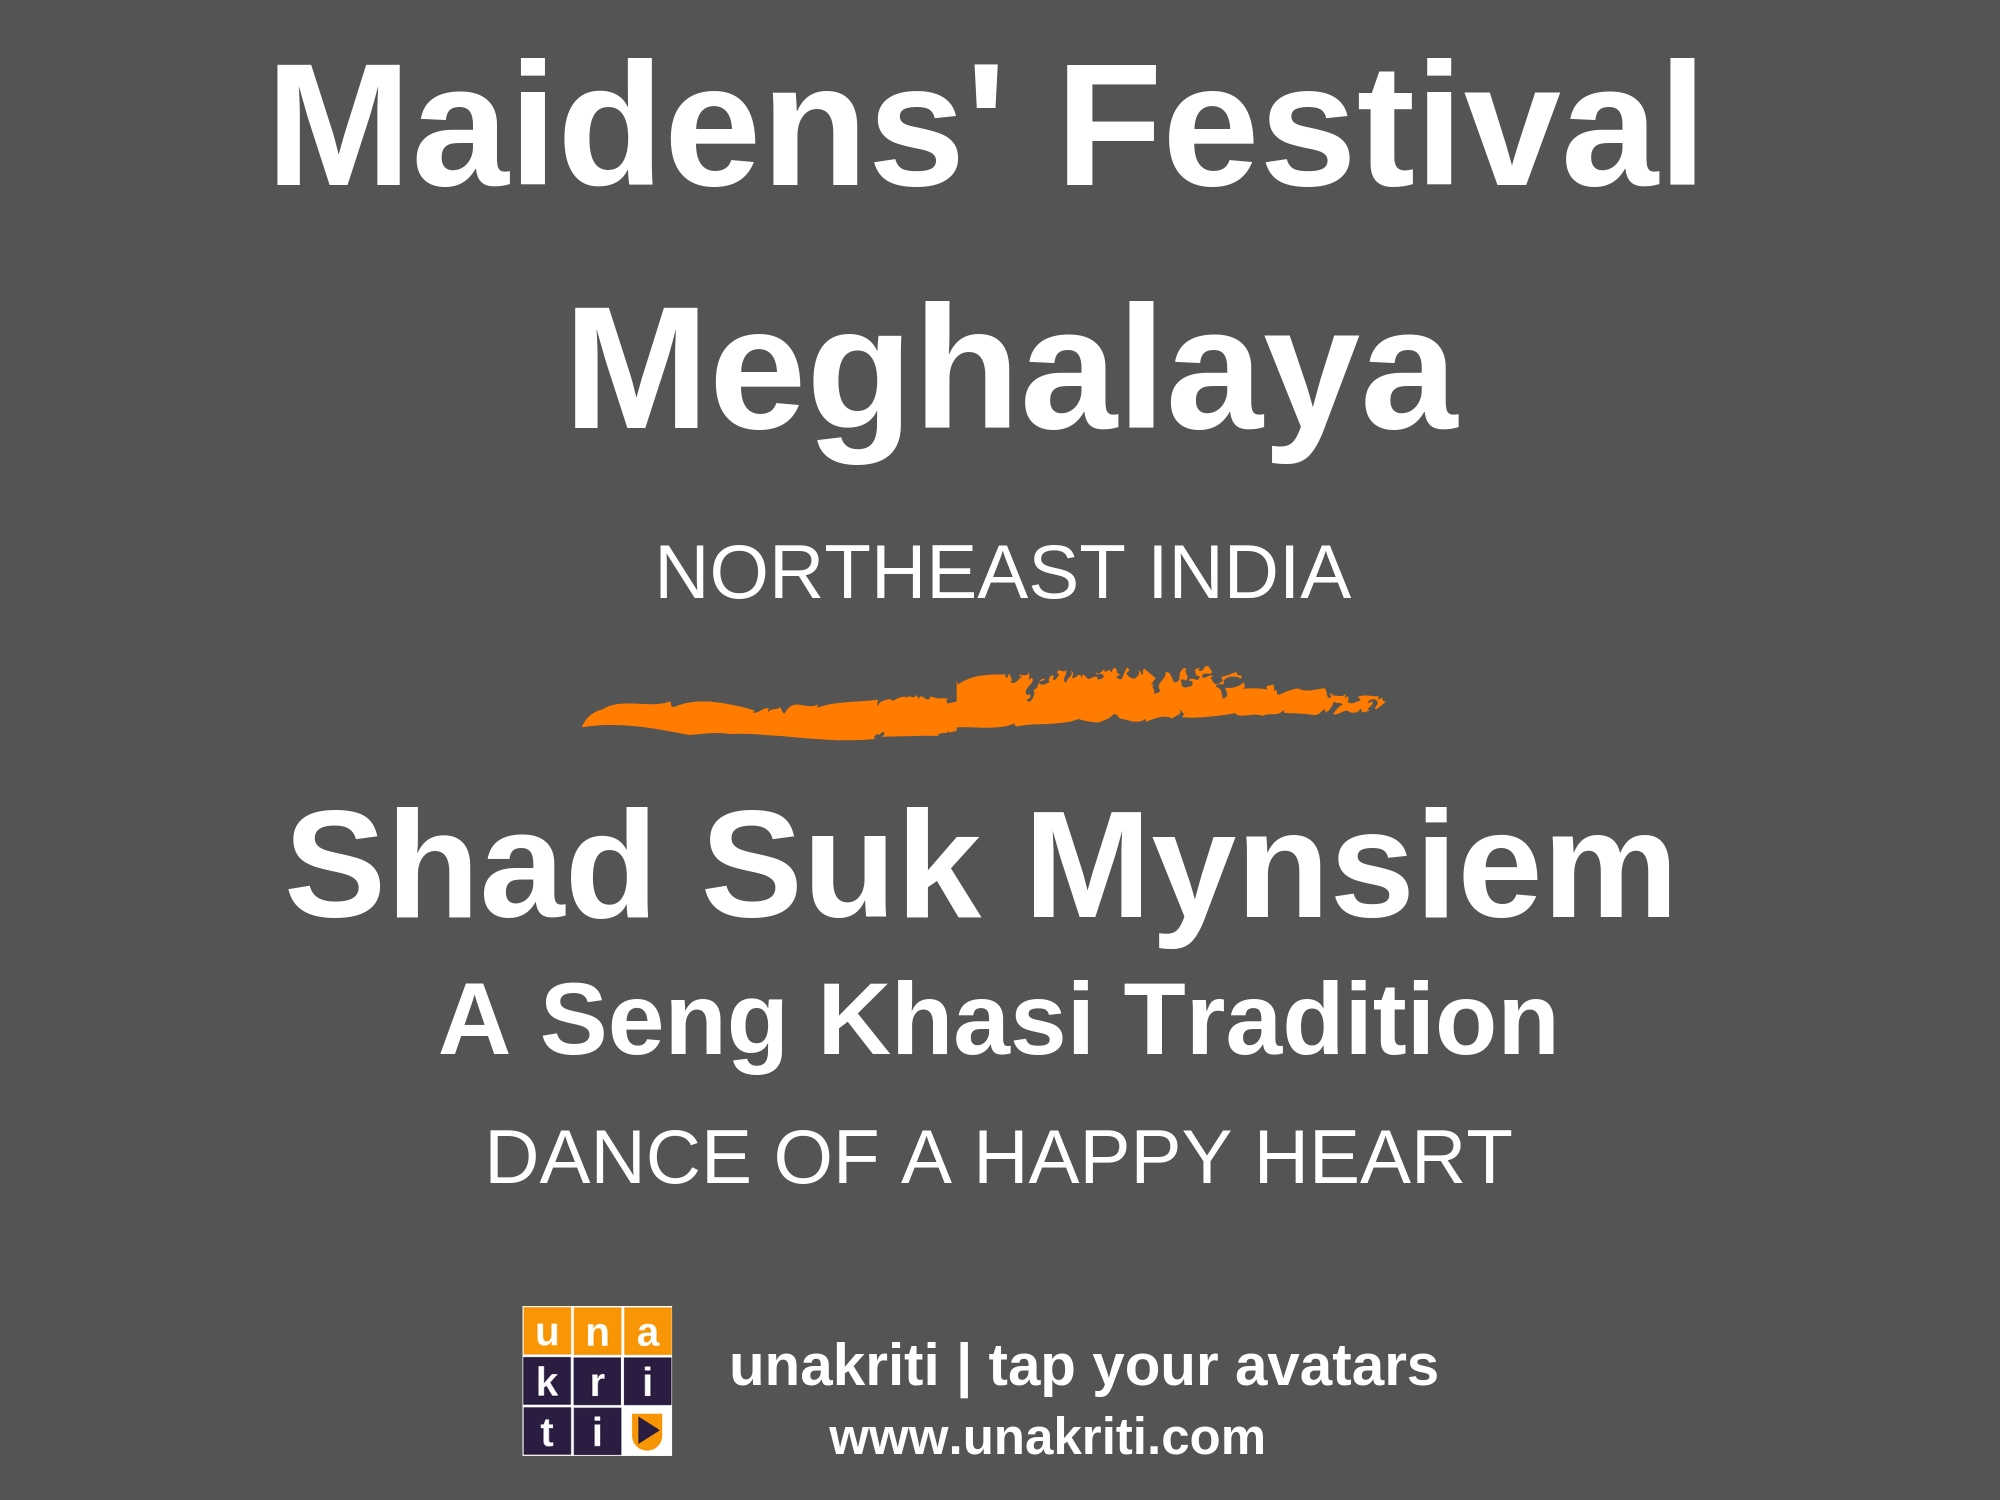 What is the dance of a happy heart in northeast India?